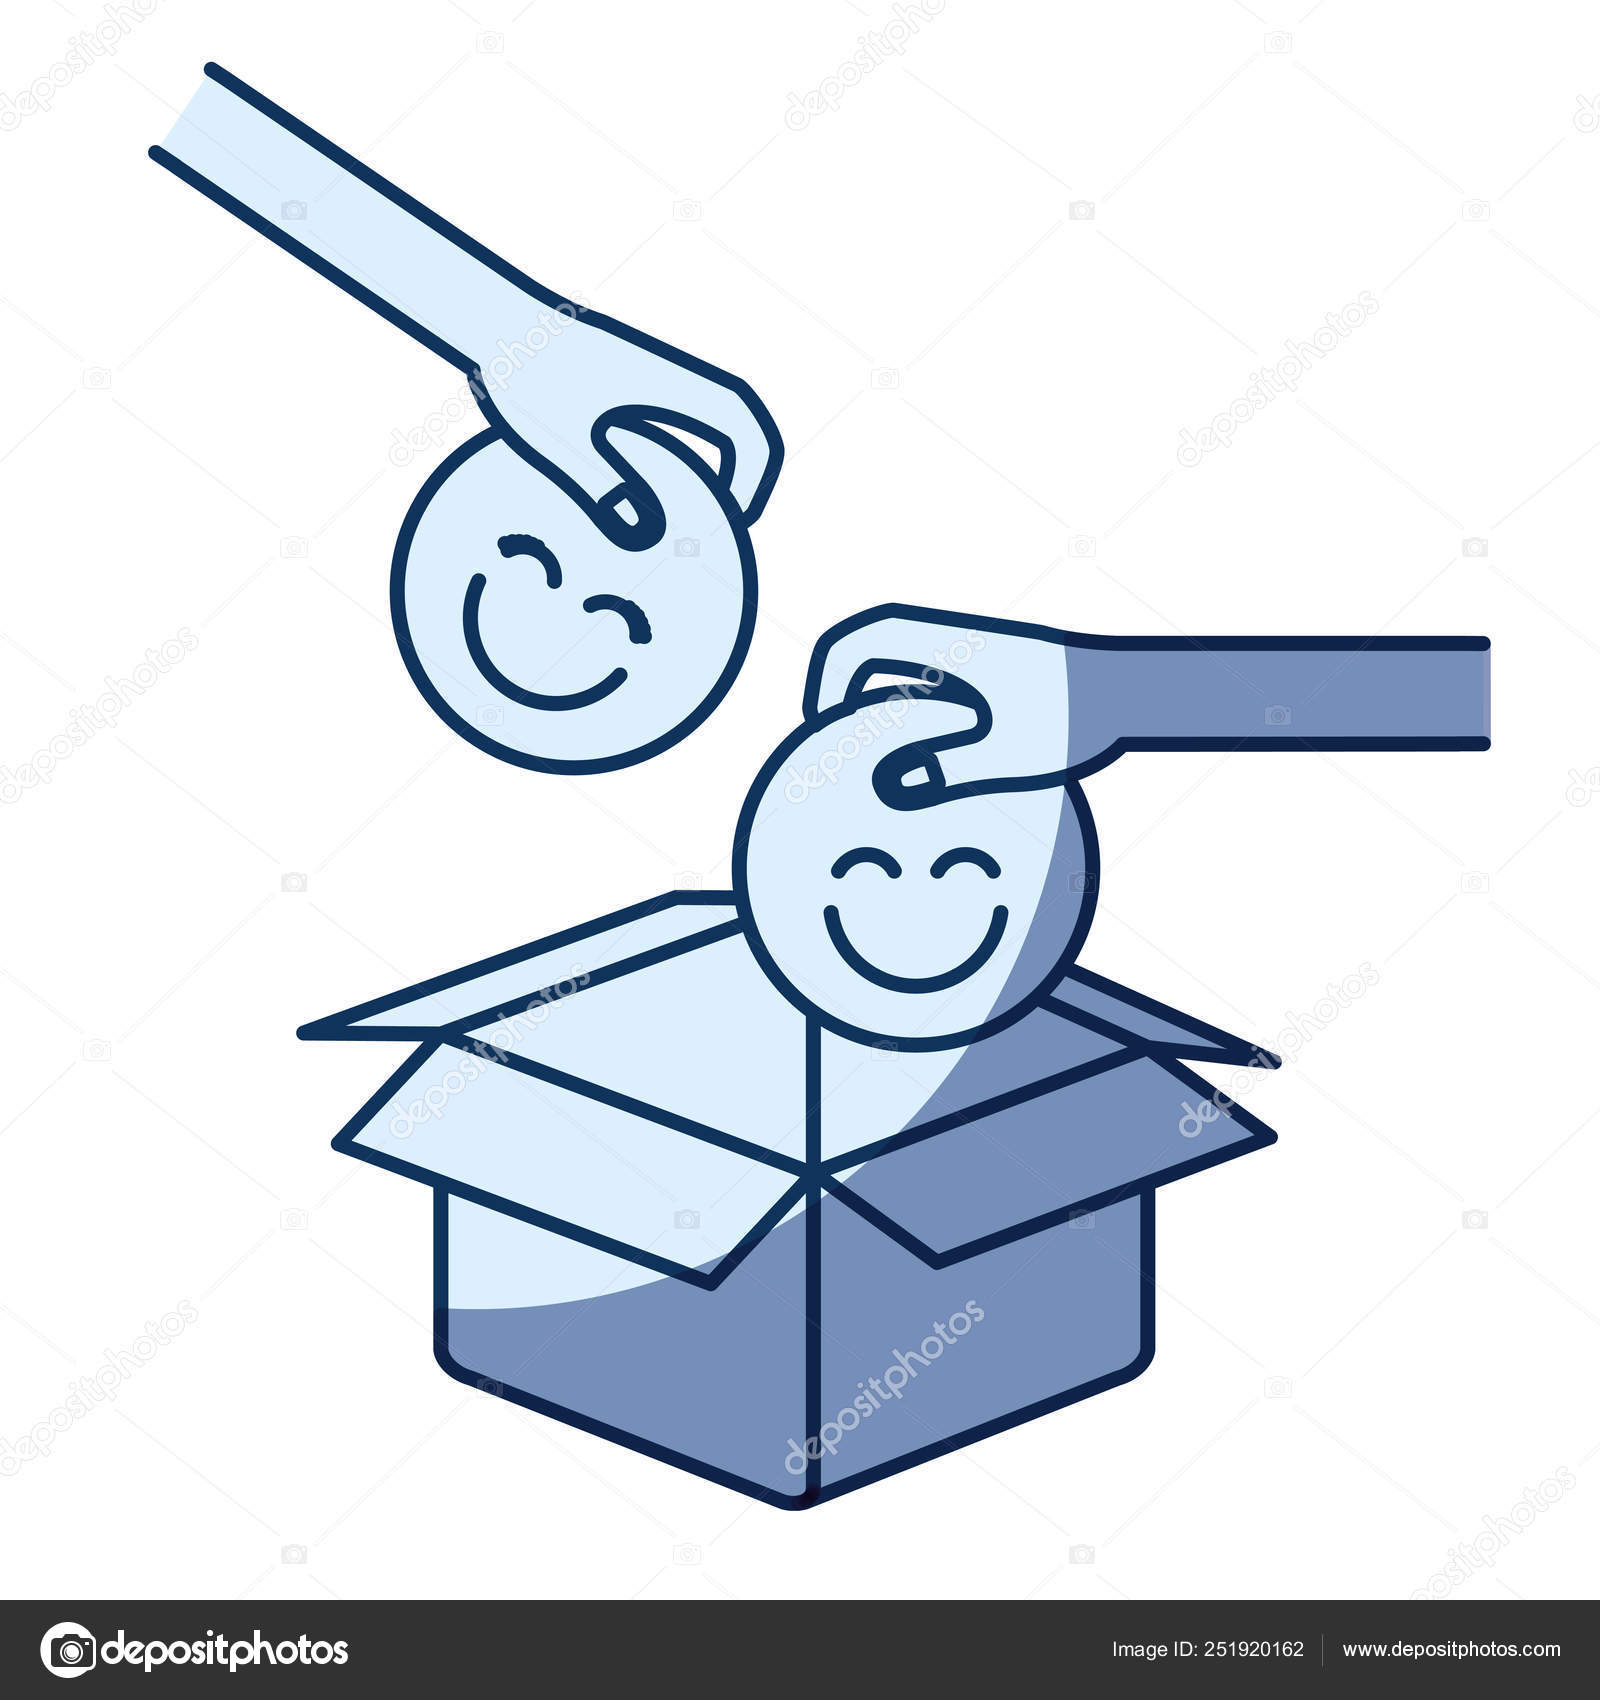 Blue Color Silhouette Shading Of Side View Of Pair Hands Holding A Happy Faces Symbol To Deposit In Cardboard Box Stock Vector C Grgroupstock 251920162